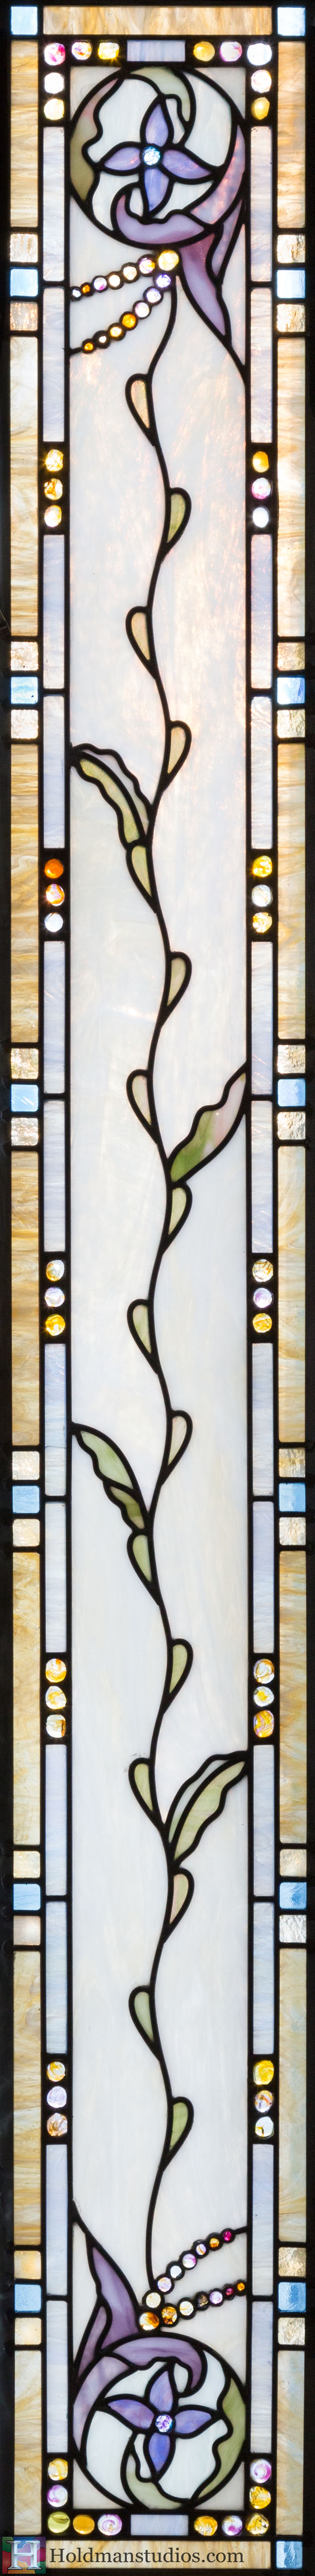 Holdman-Studios-Stained-Glass-Transom-Window-Flowers-Floral-Pattern-Handmade-Jewels-Square-Rectangles.jpg